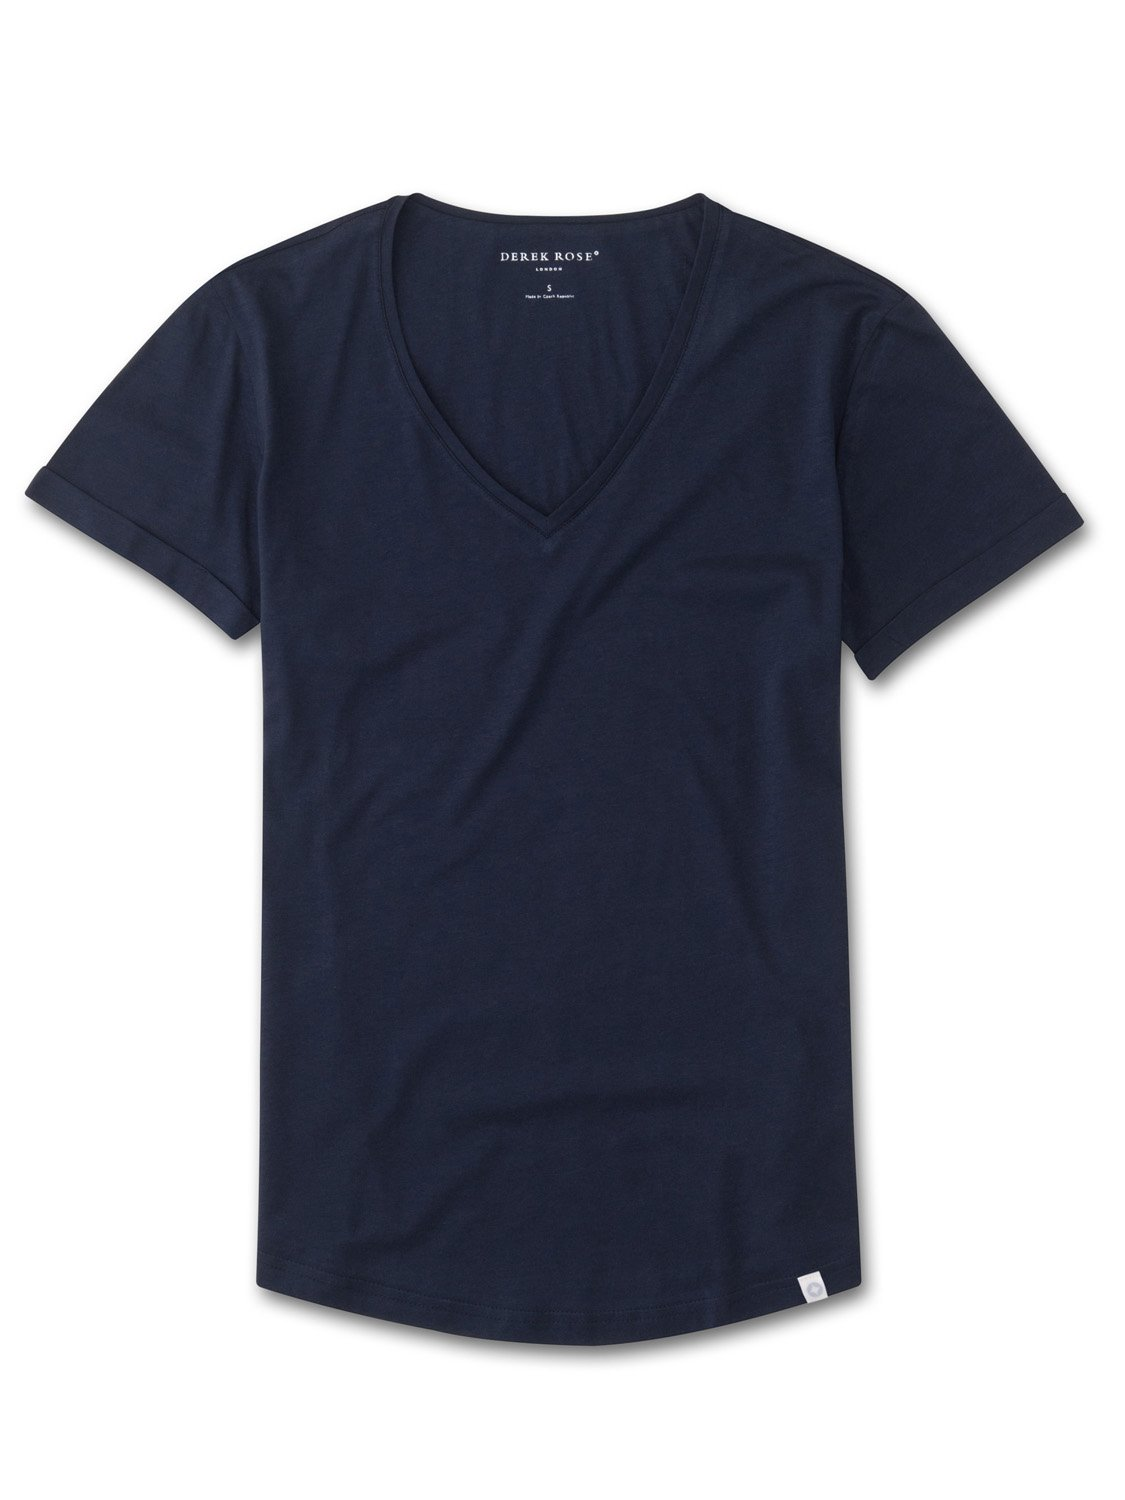 Women's V-Neck Leisure T-Shirt Riley Pima Cotton Navy